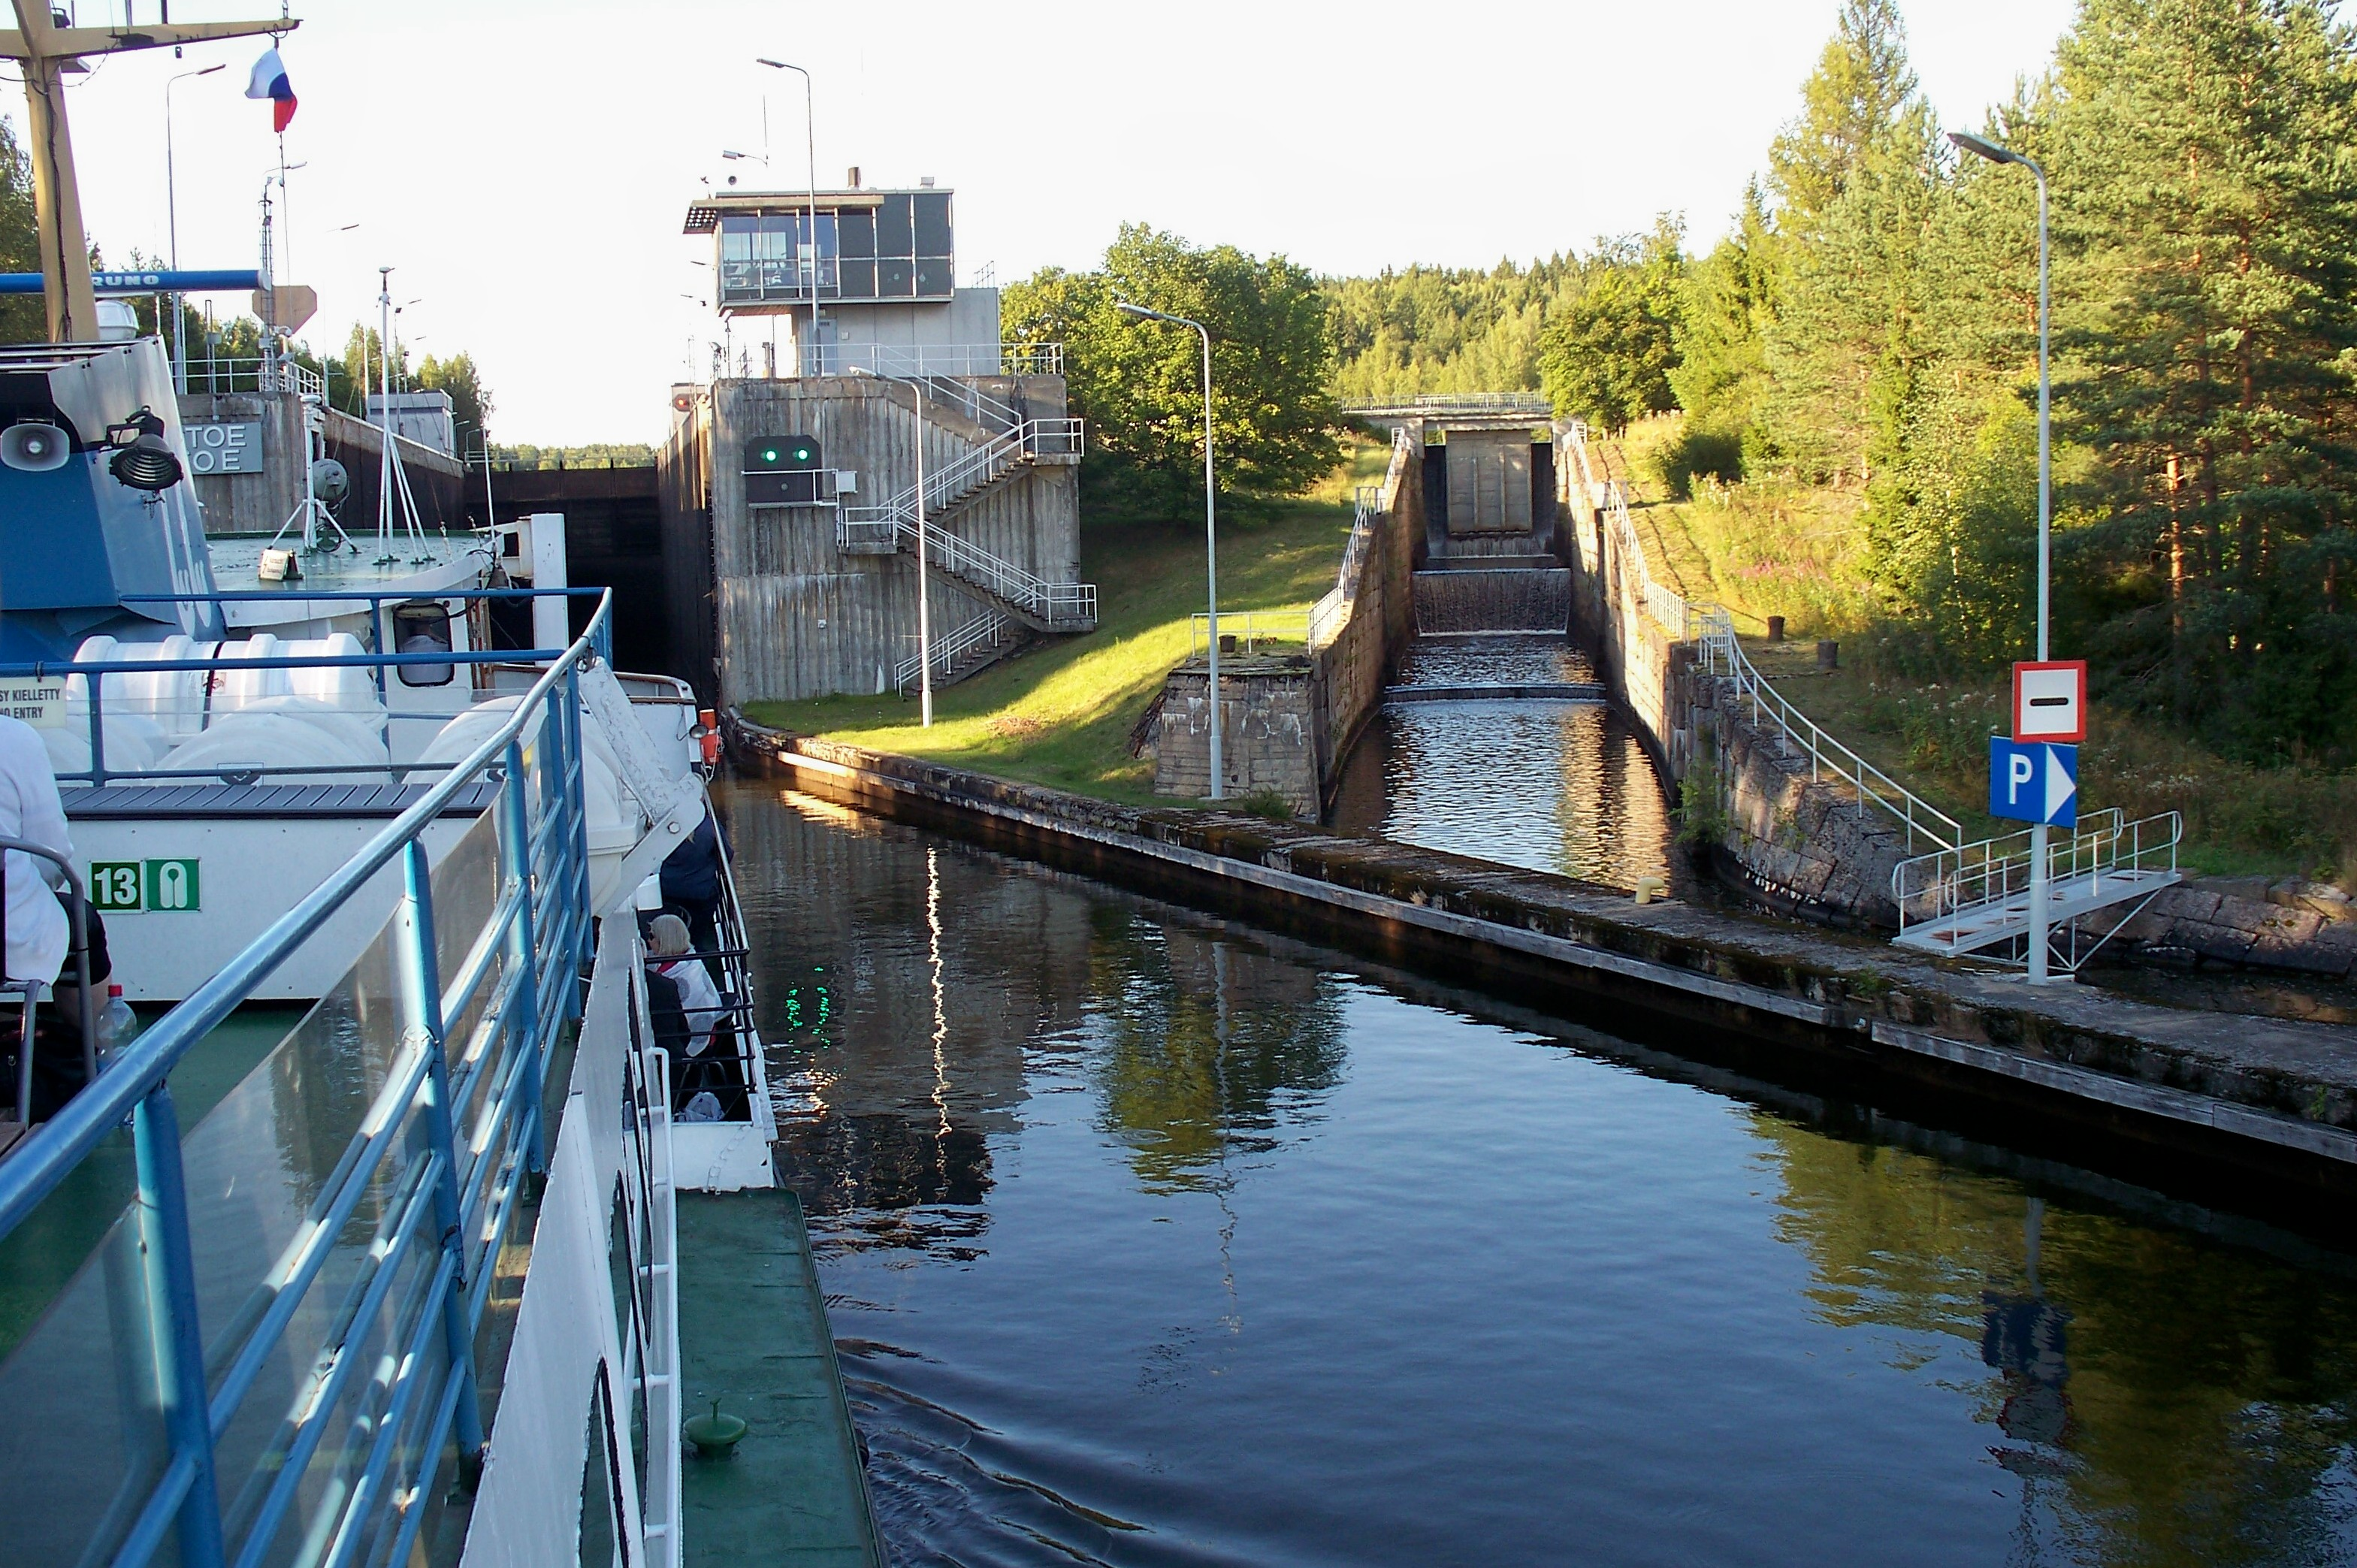 Entering one of the 7 locks on the Saimaa Canal.